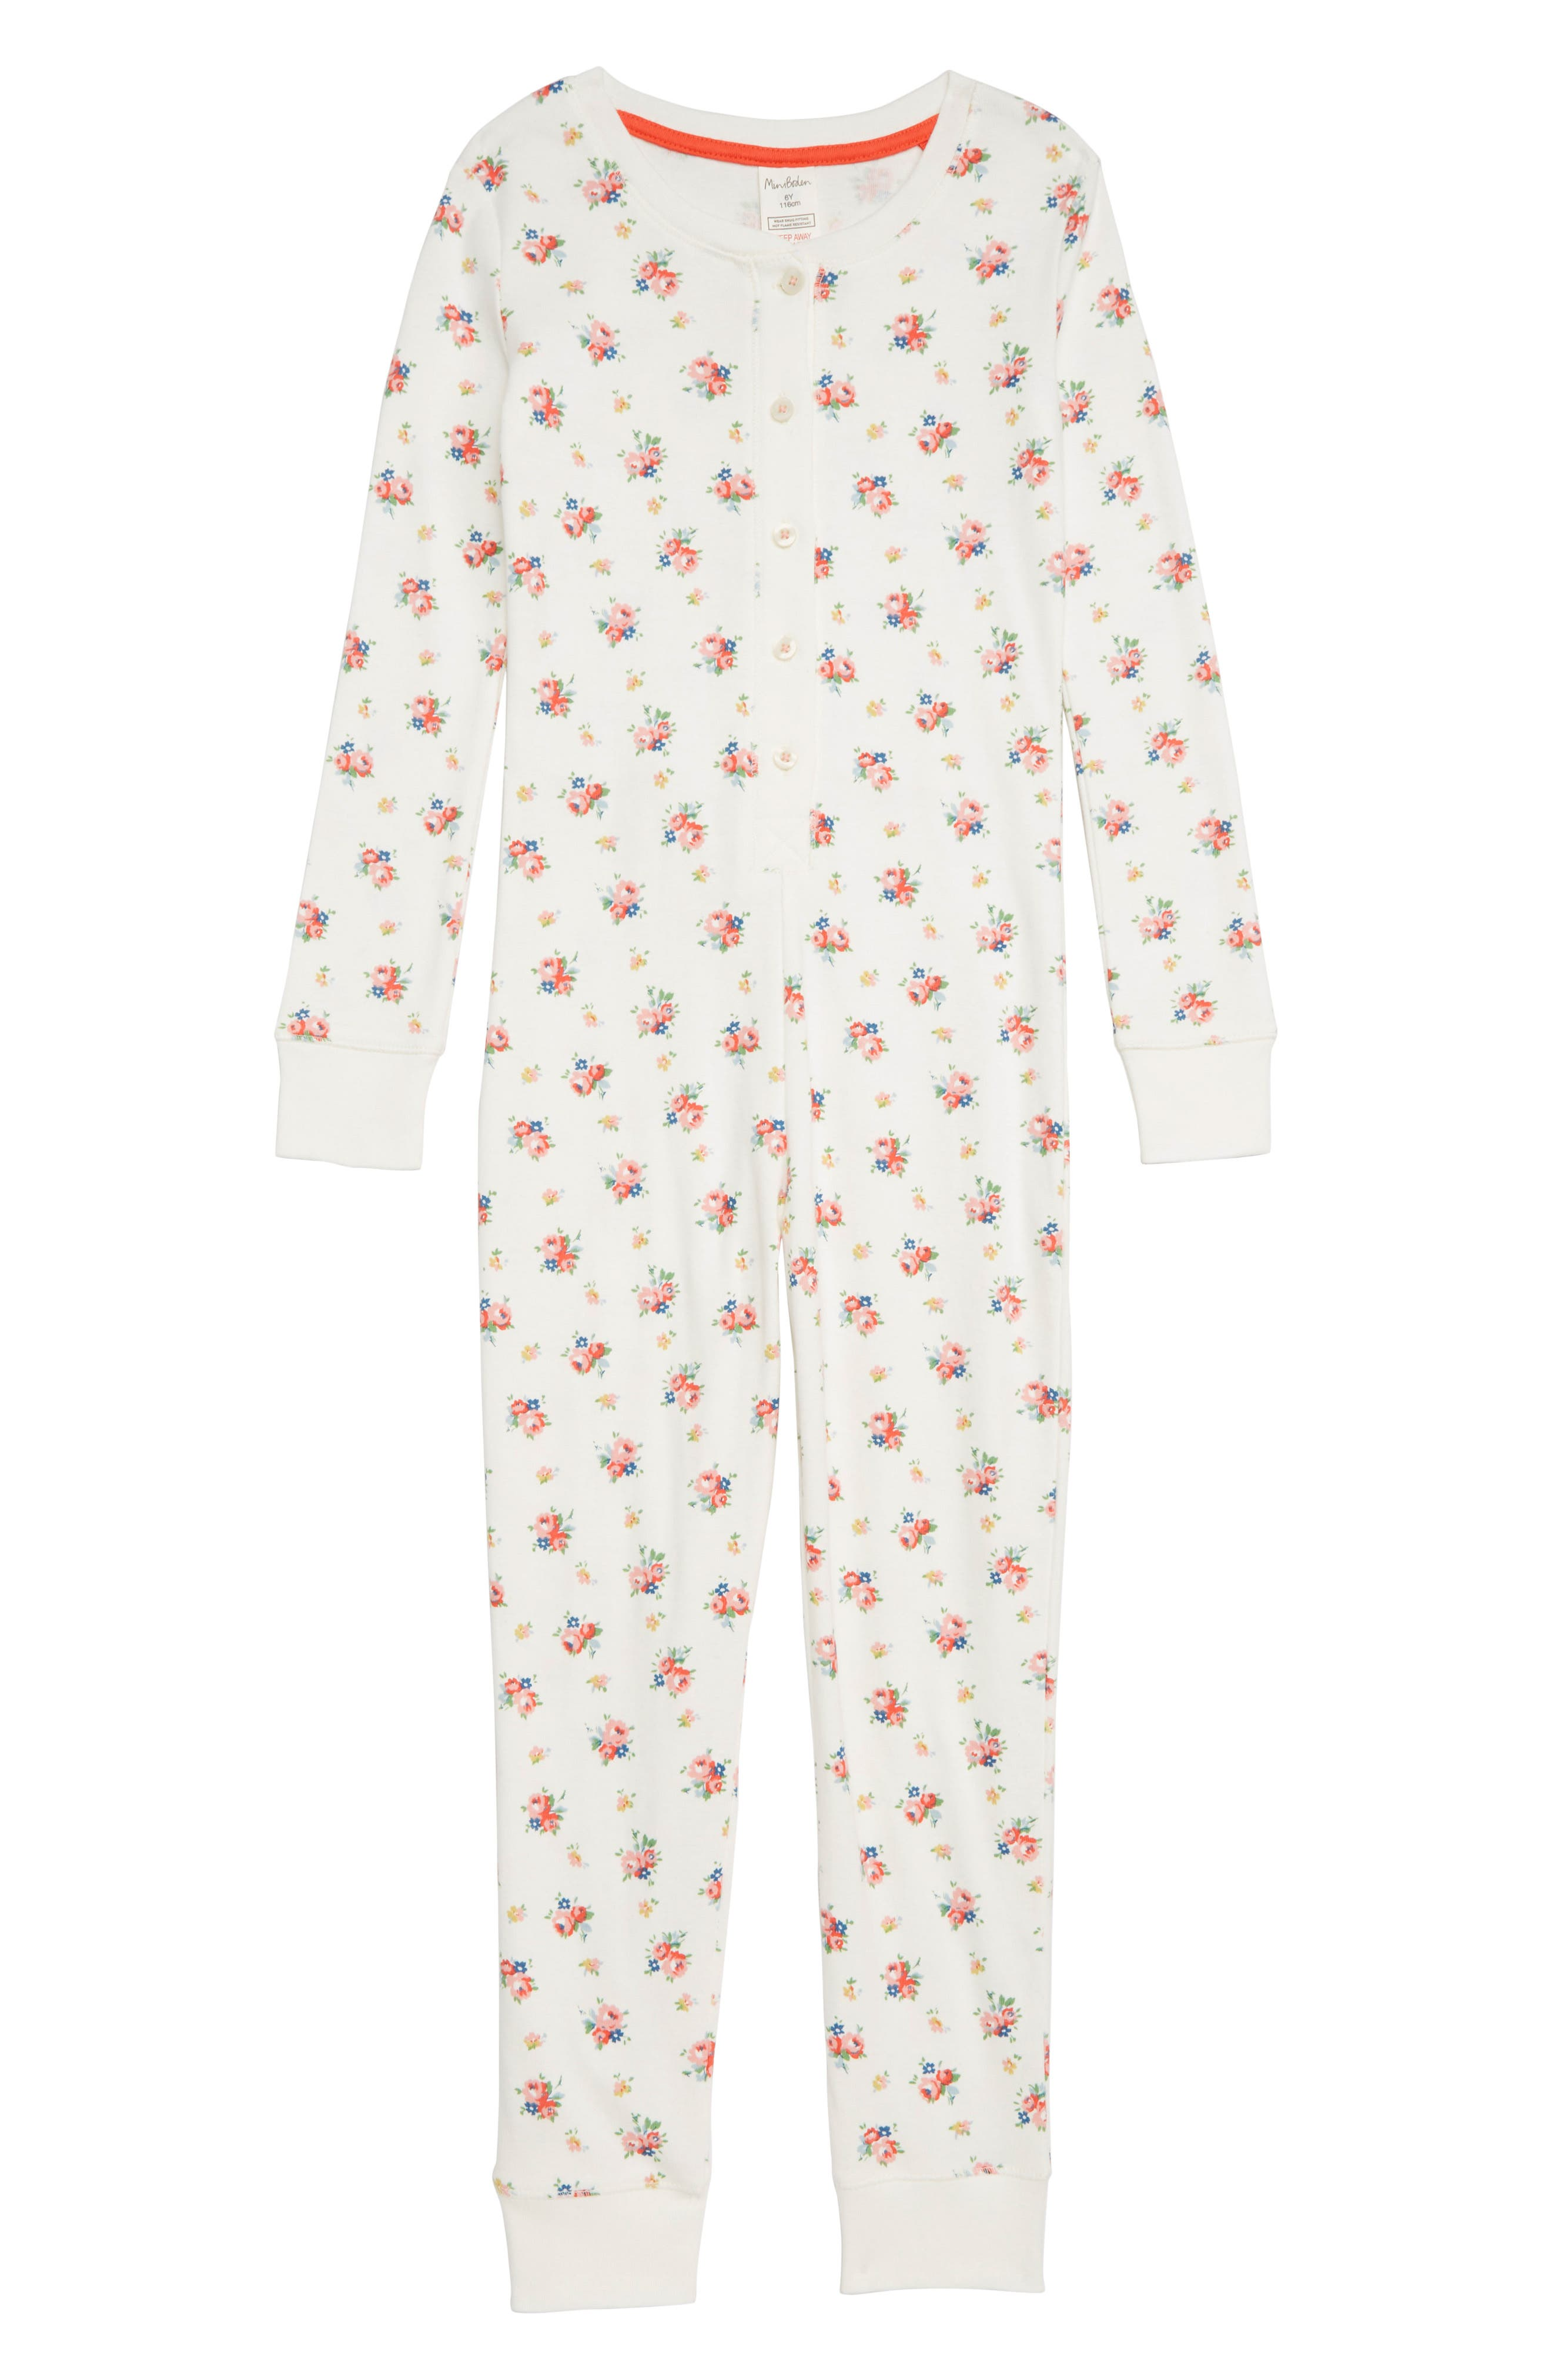 Girls Mini Boden Fitted Cosy All In One Pajamas Size 4Y  Pink